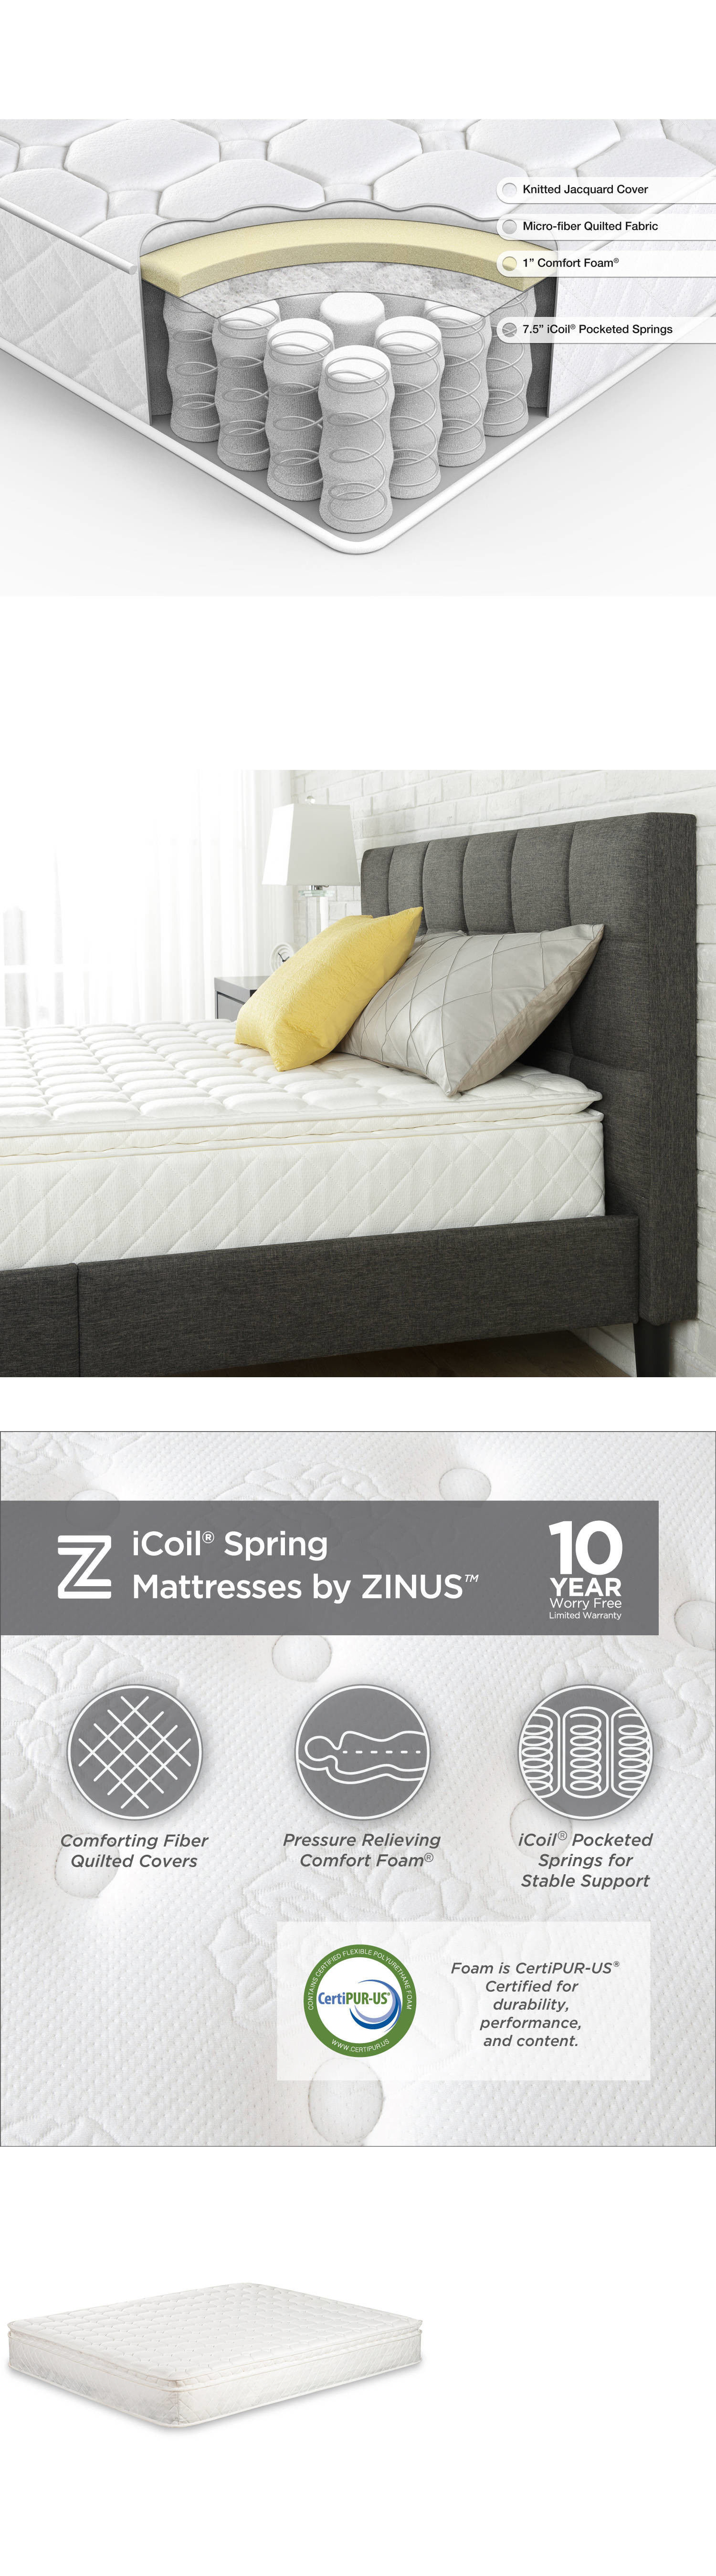 australia review mattress gallery up slumber best in bed dream of pillow sit top